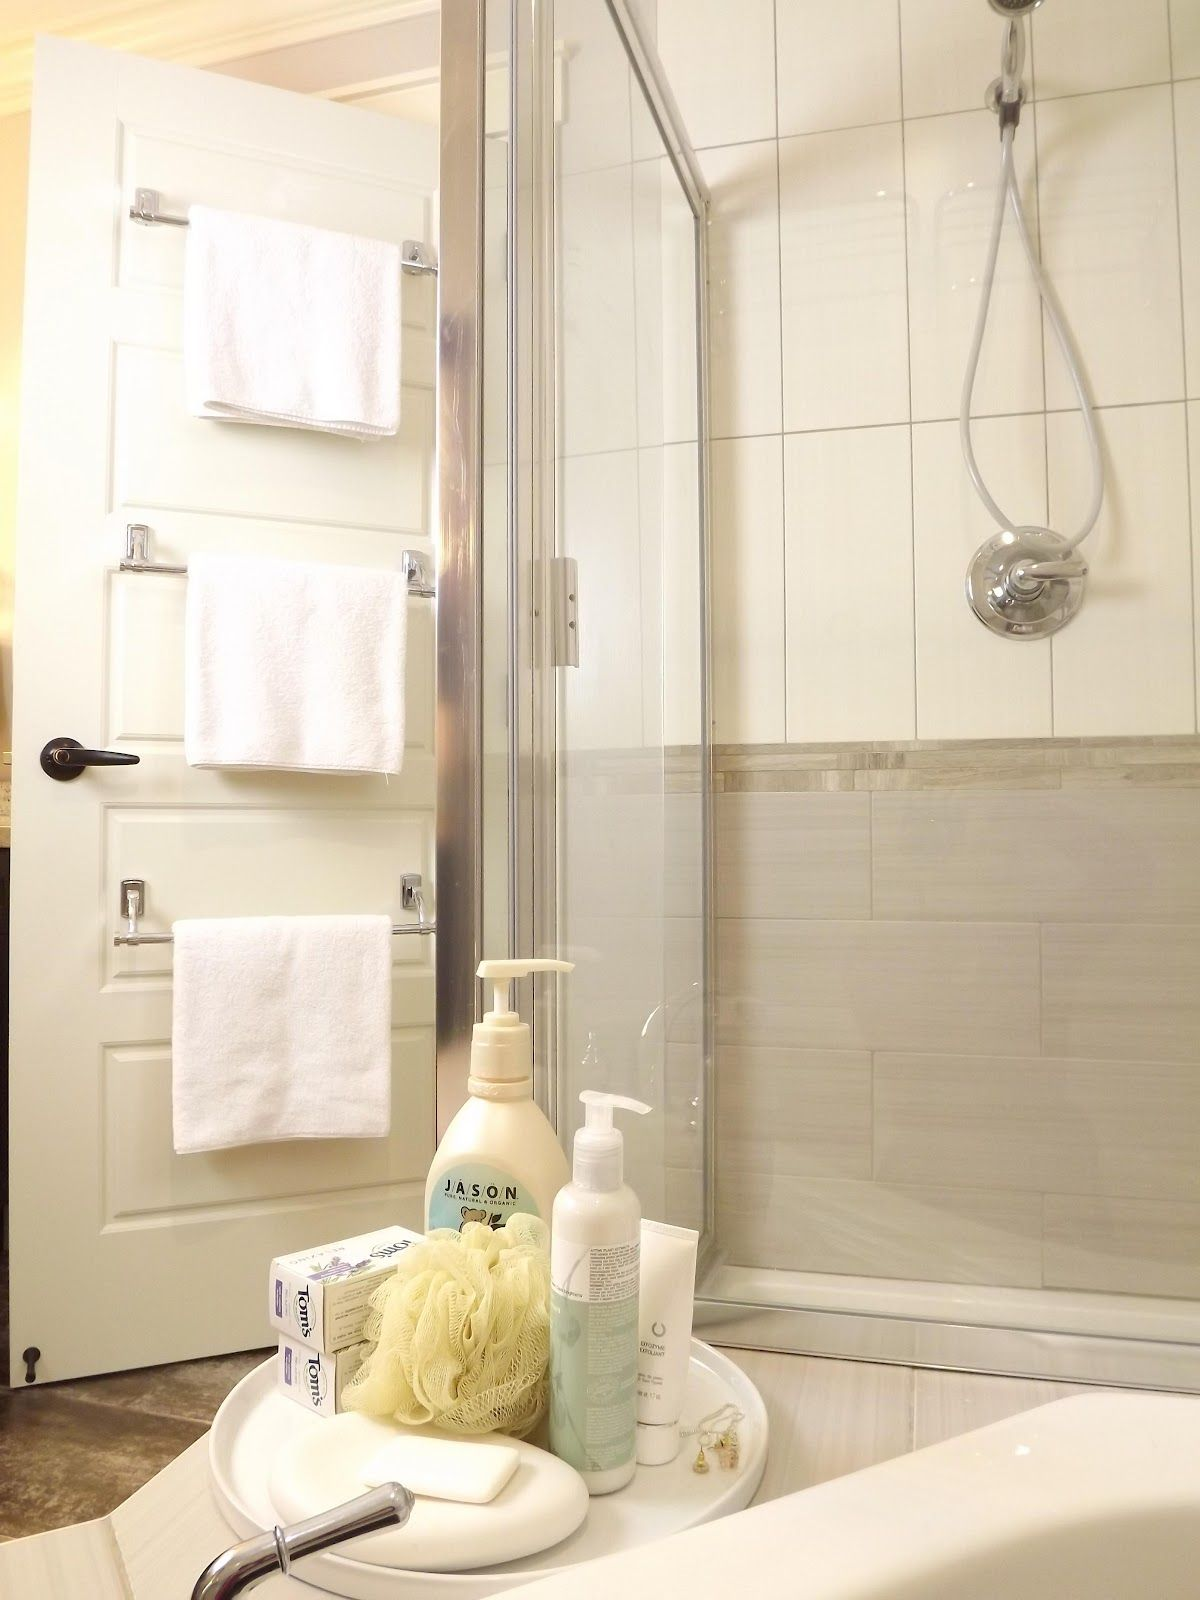 Attach Multiple Towel Bars To The Back Of The Bathroom Door For - Bathroom towel hanging ideas for small bathroom ideas